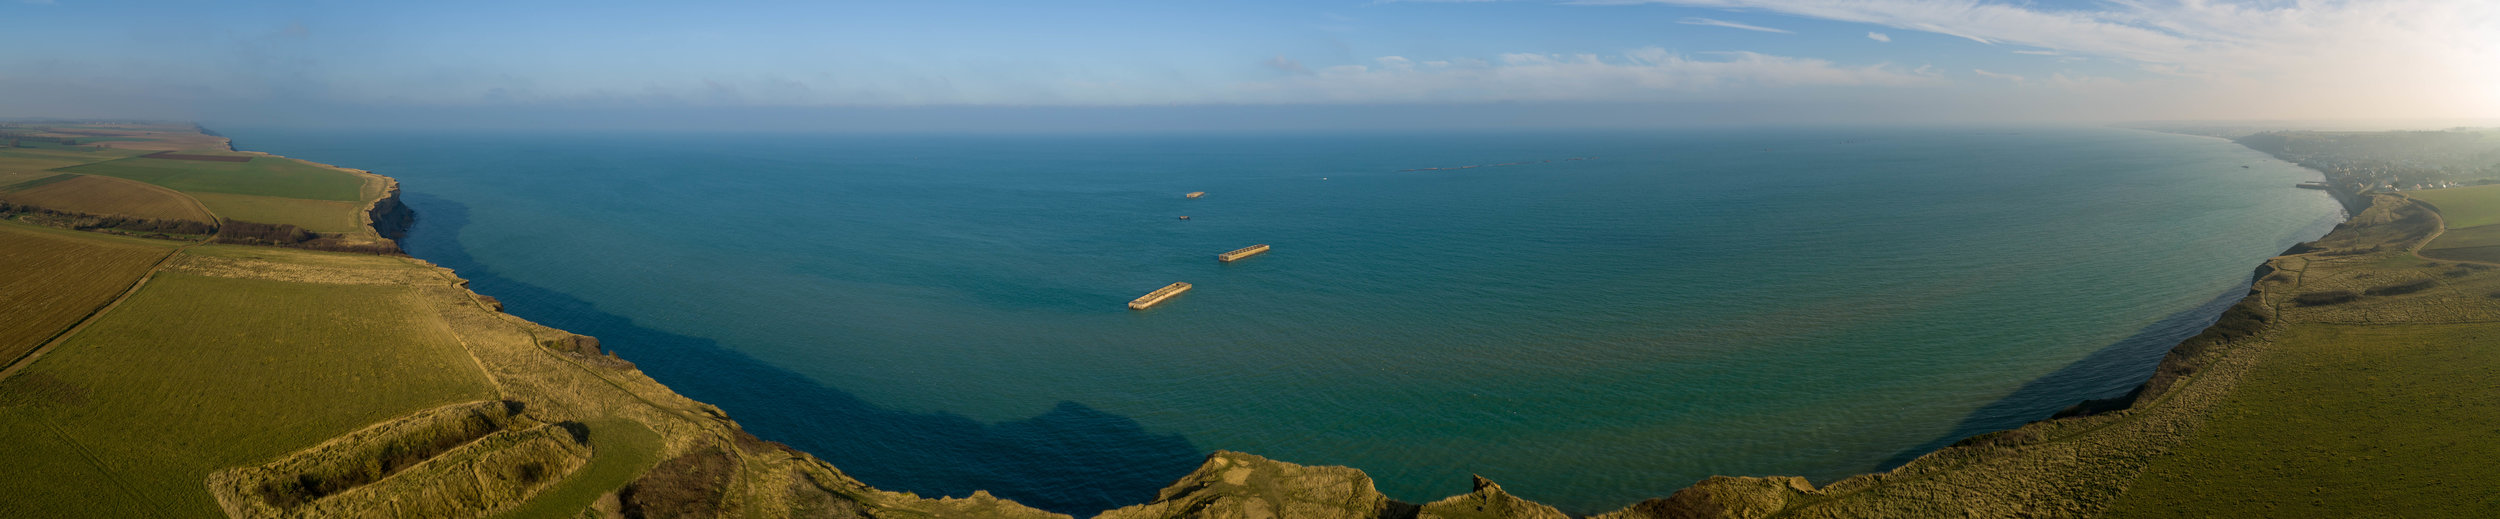 arromanches_pano-©Stephane_Leroy.jpg